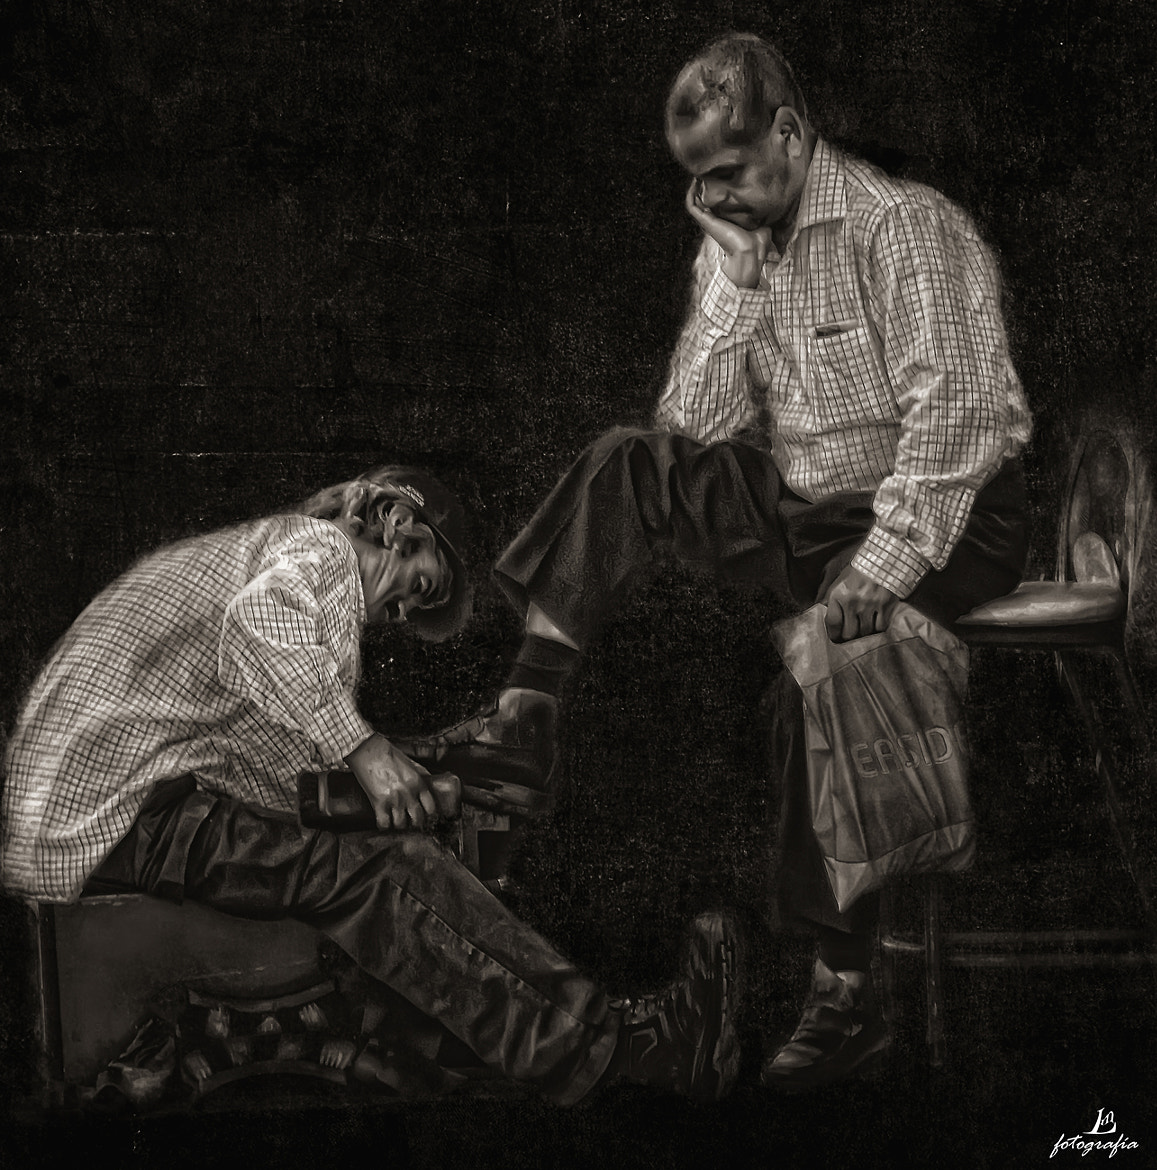 Photograph The shoeshine by Manuel Lancha on 500px